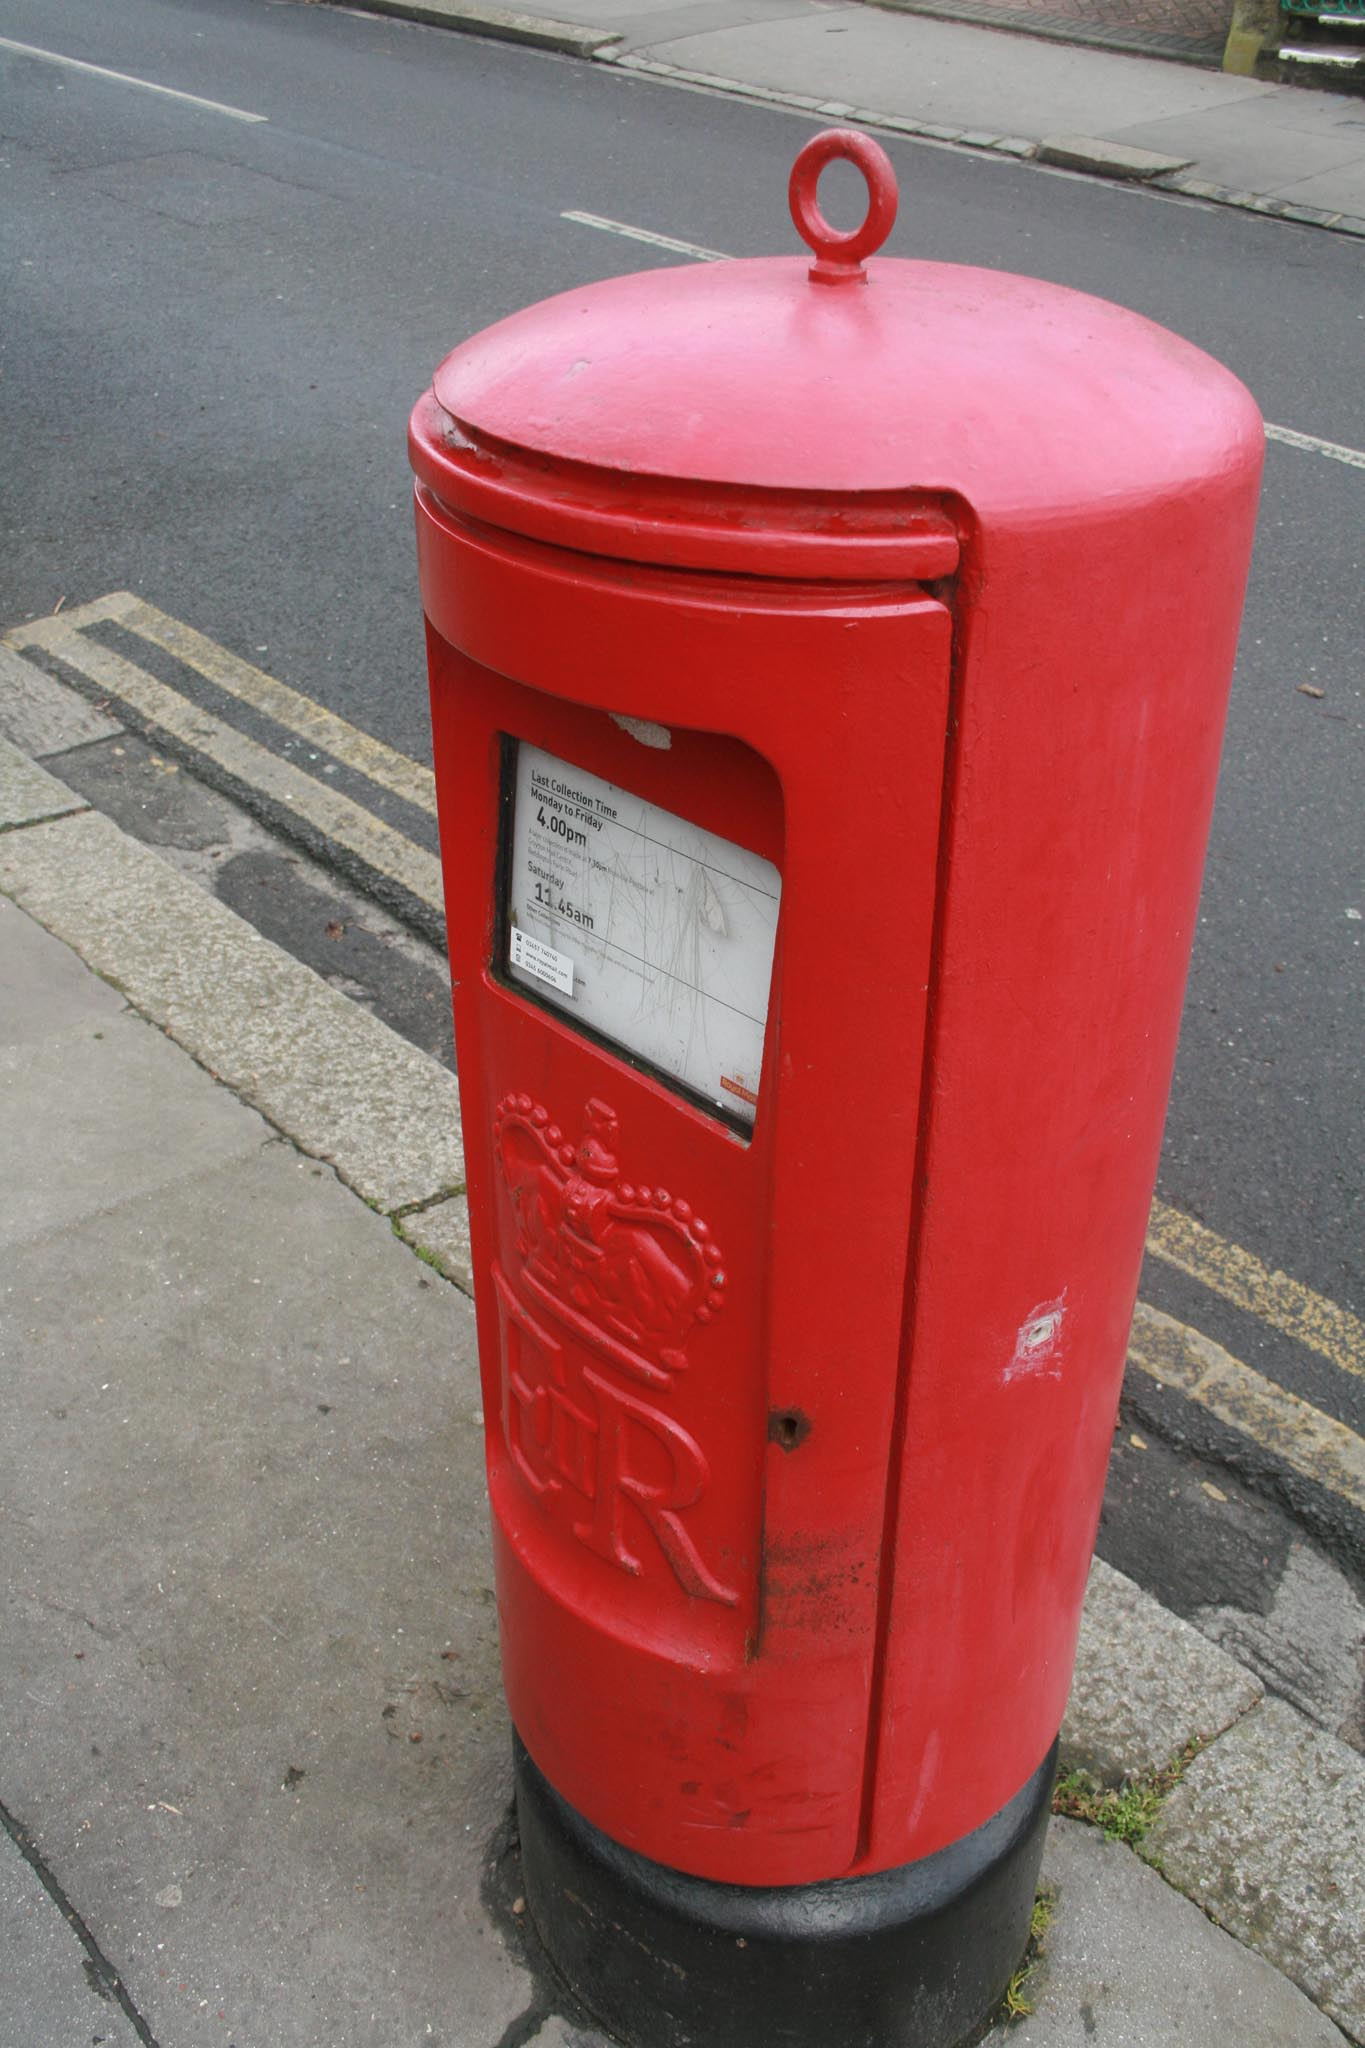 E2R pillar box, 1980s. Robert Cole